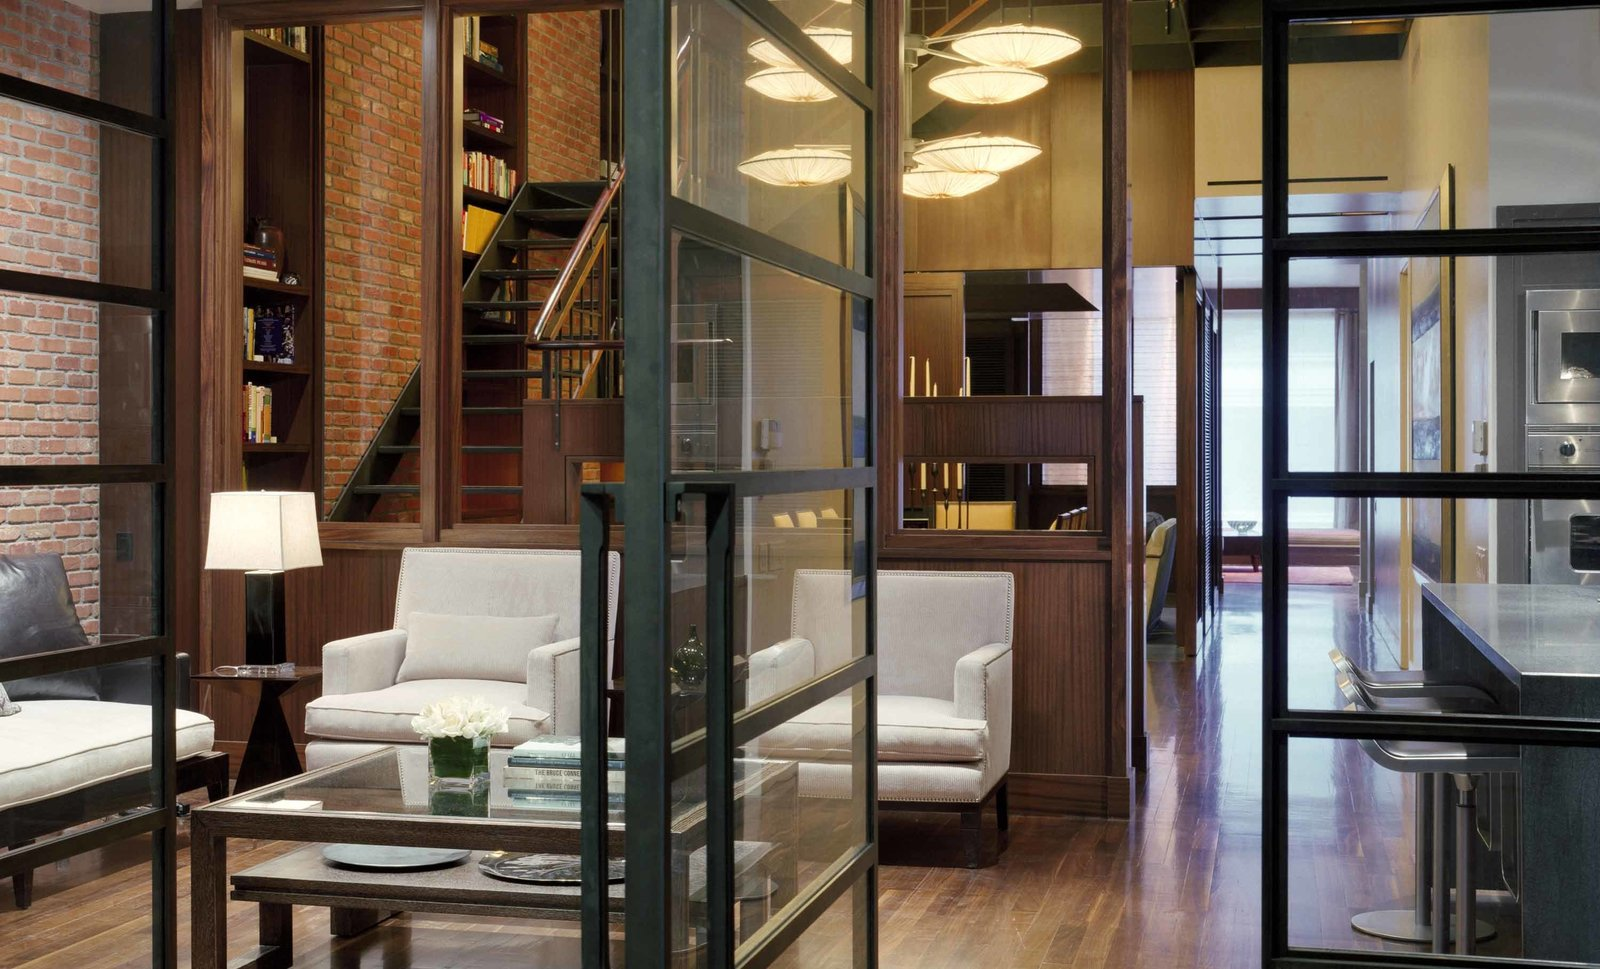 """SPAN balanced the owner's passion for Arts and Crafts architecture with an """"unabashedly urban"""" sensibility, encapsulated by the exposed brick wall. Impressed with the results, the client tasked the firm with designing his Maine hideaway along similar aesthetic lines. The kitchen banquet is custom by SPAN.  A Warm, Luxurious New York City Duplex with a Dramatic Catwalk by Luke Hopping"""